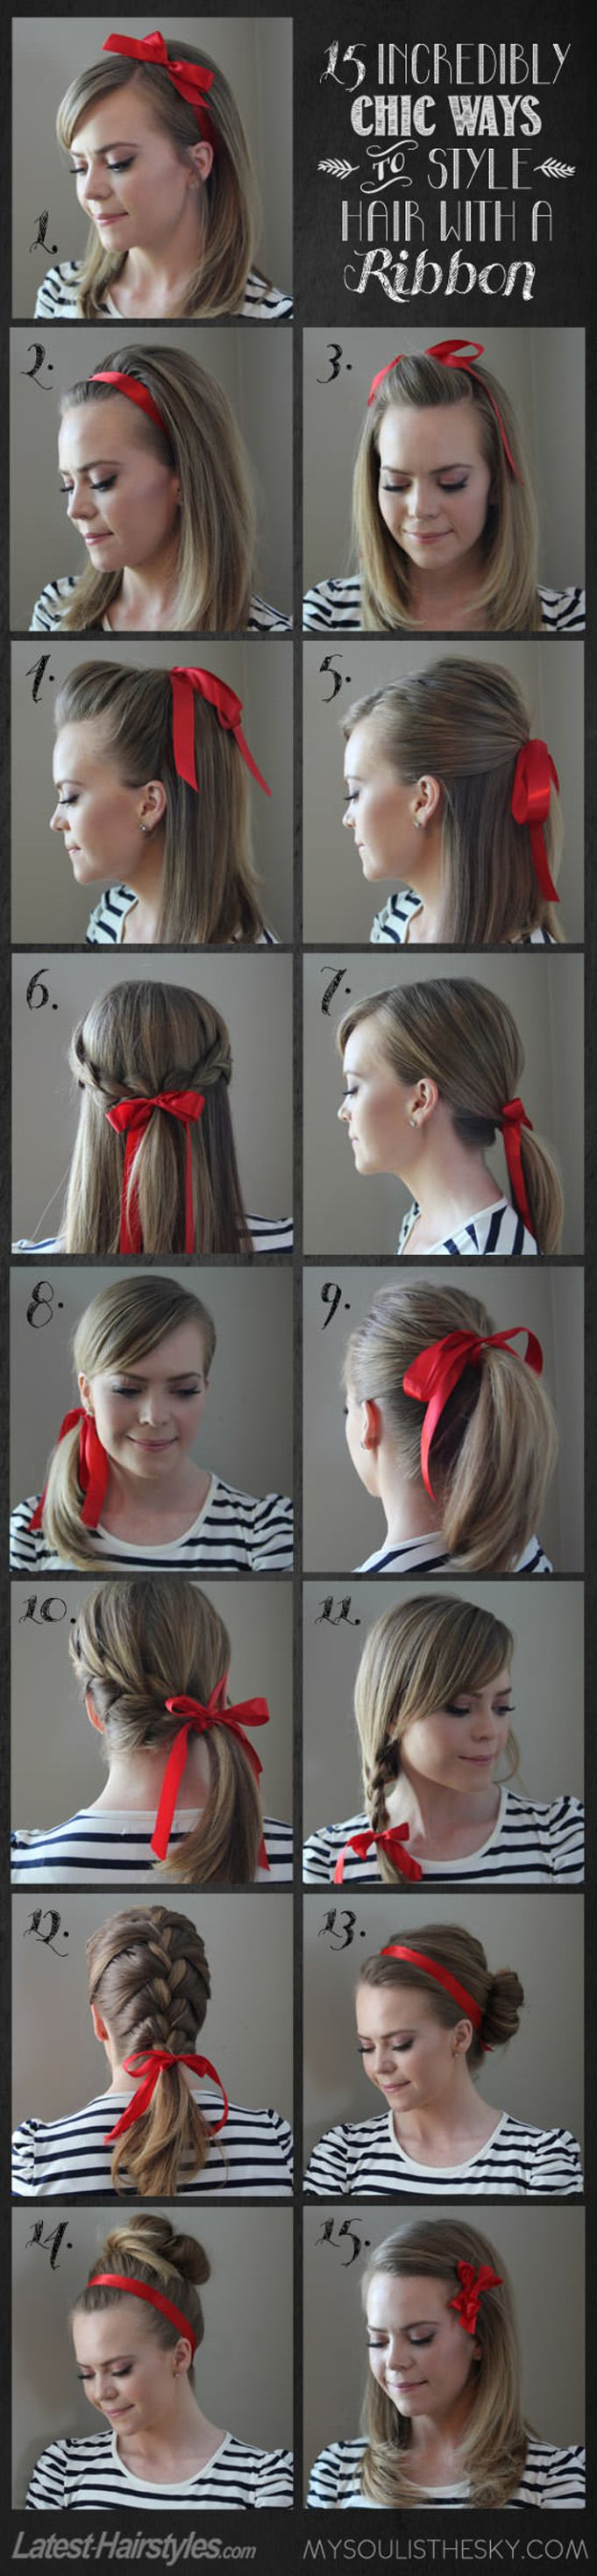 Amazing and Chic Ways to Style Hair with A Ribbon